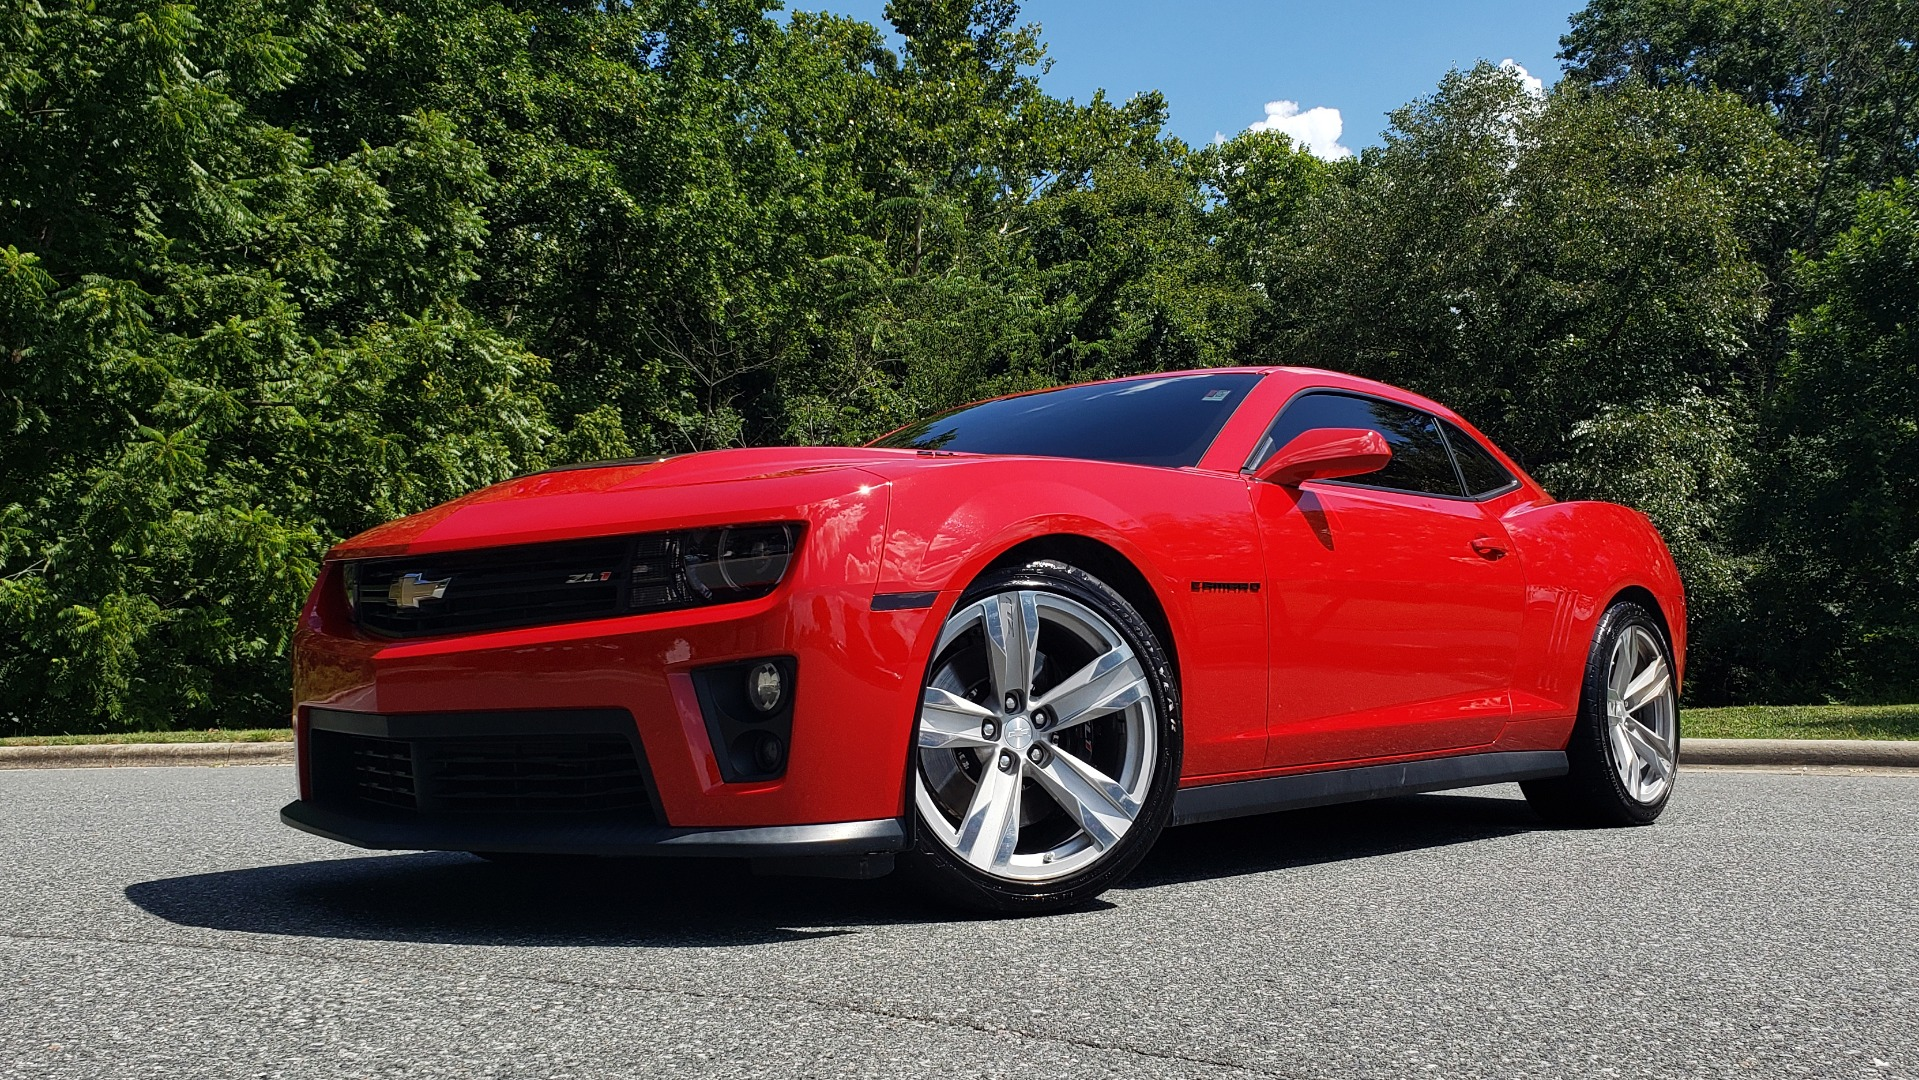 Used 2013 Chevrolet CAMARO ZL1 580HP / AUTO / NAV / BOSTON ACOUSTIC SND / REARVIEW for sale $40,995 at Formula Imports in Charlotte NC 28227 2